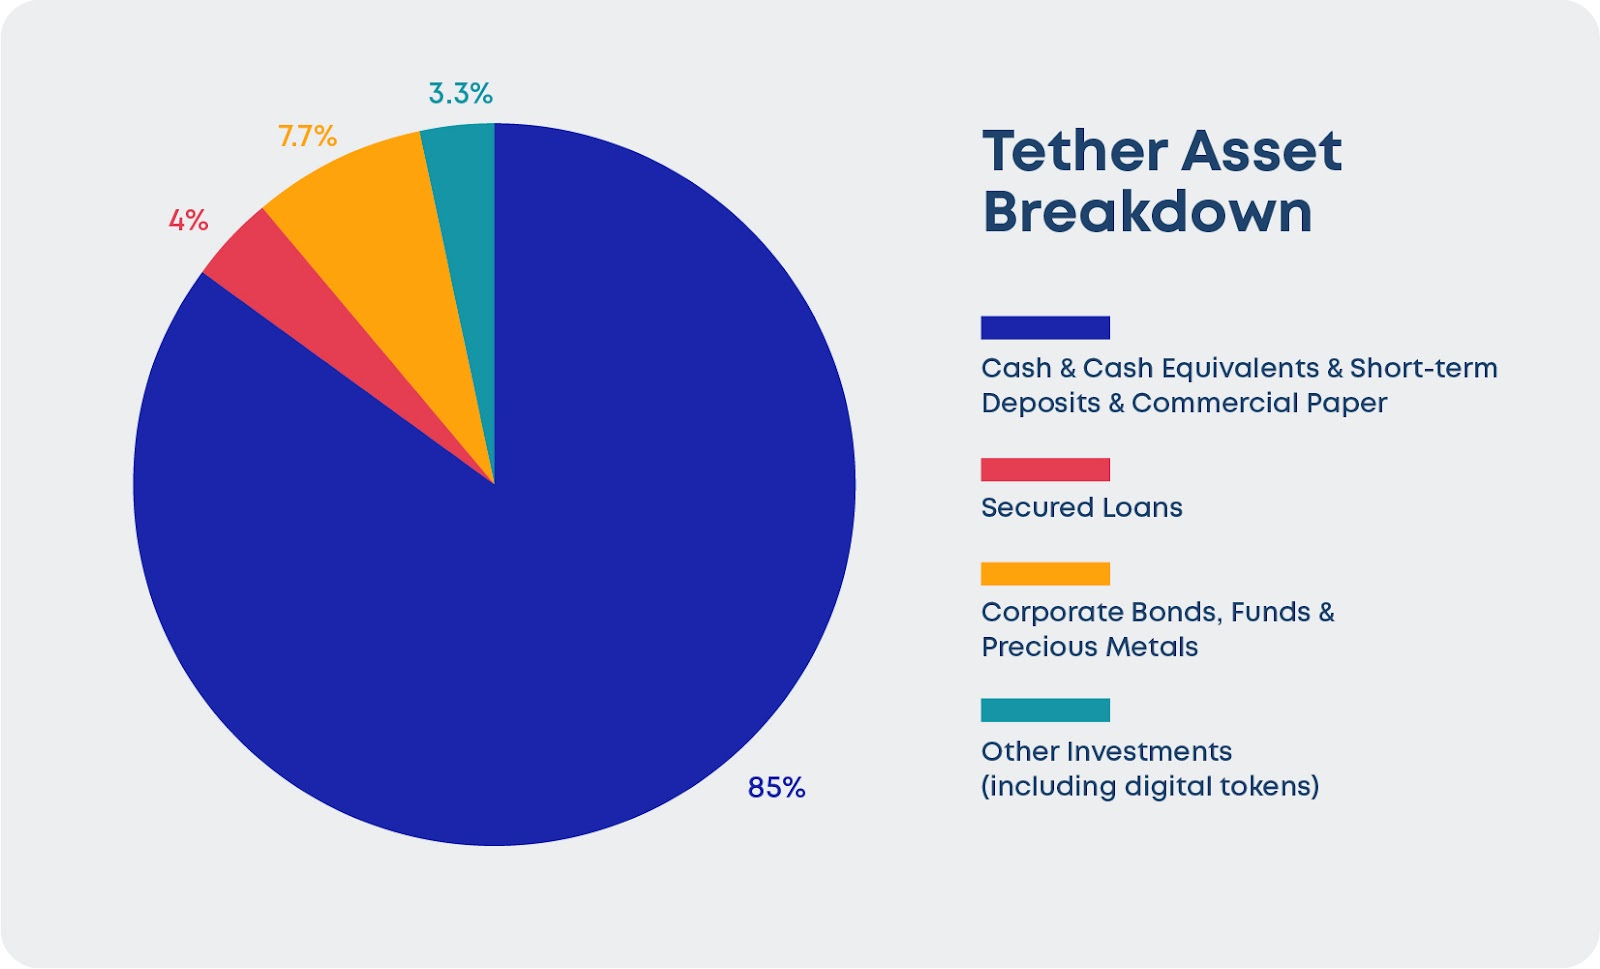 Breakdown of Tether's Assets